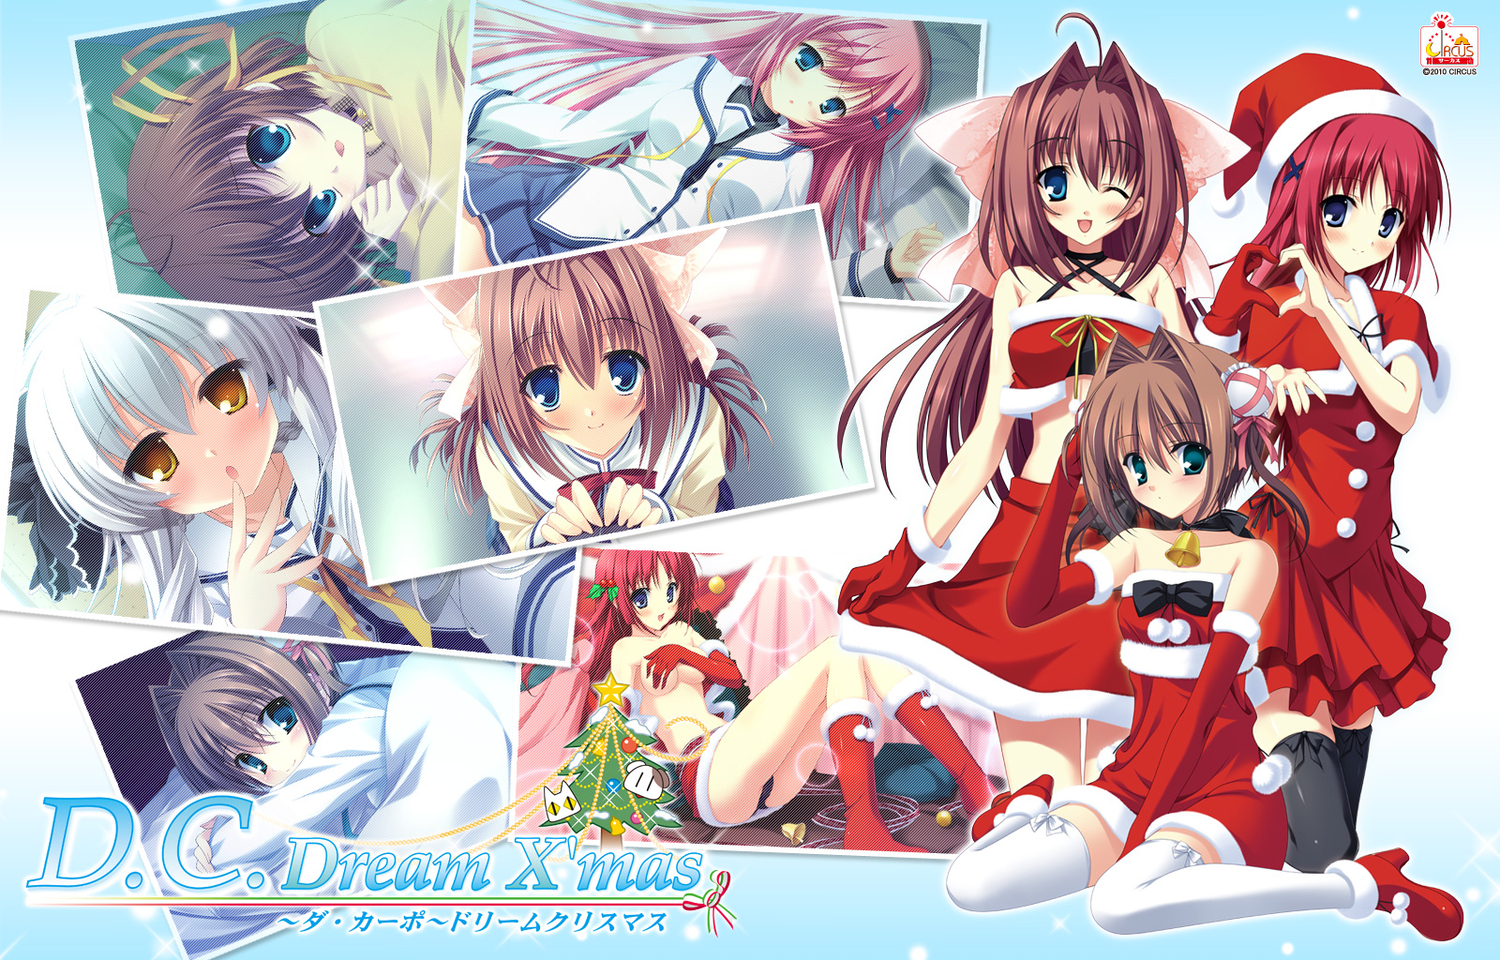 christmas da_capo_dream_x'mas santa_costume